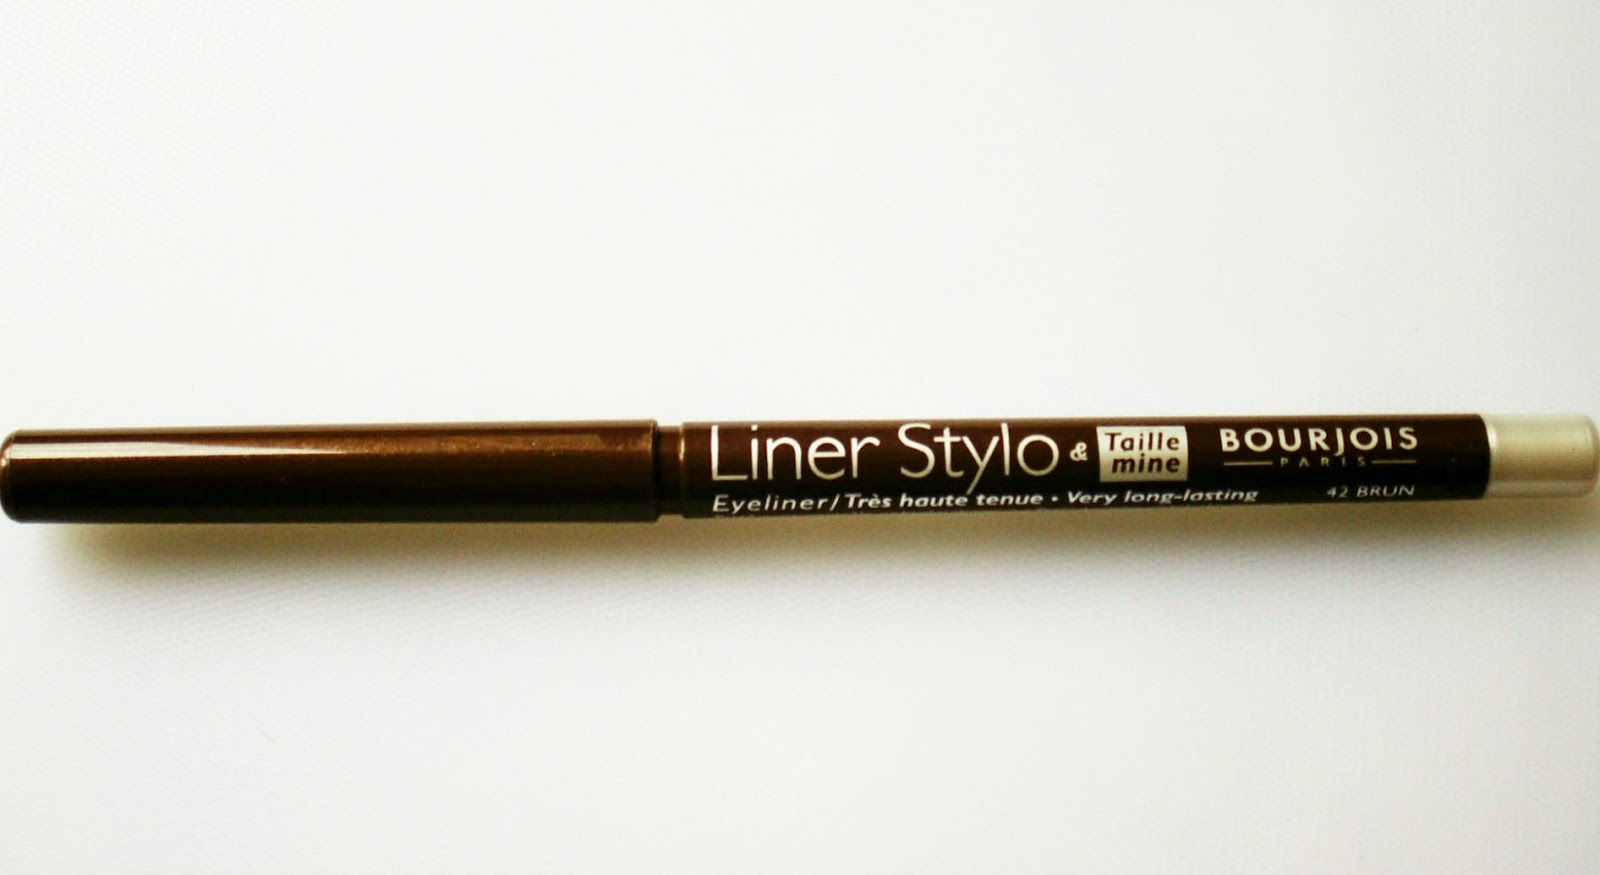 FOTD: Bourjois Liner Stylo Eye Liner in Brun Review